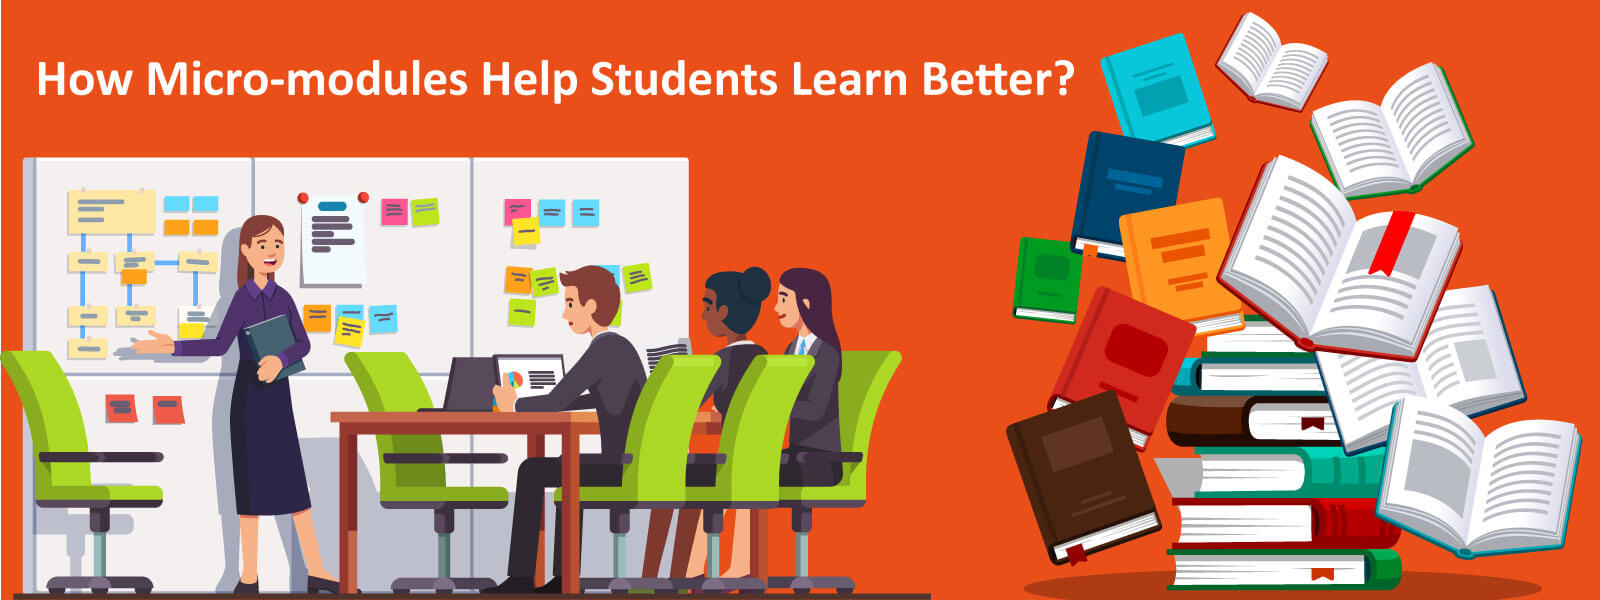 How Micro-modules Help Students Learn Better?